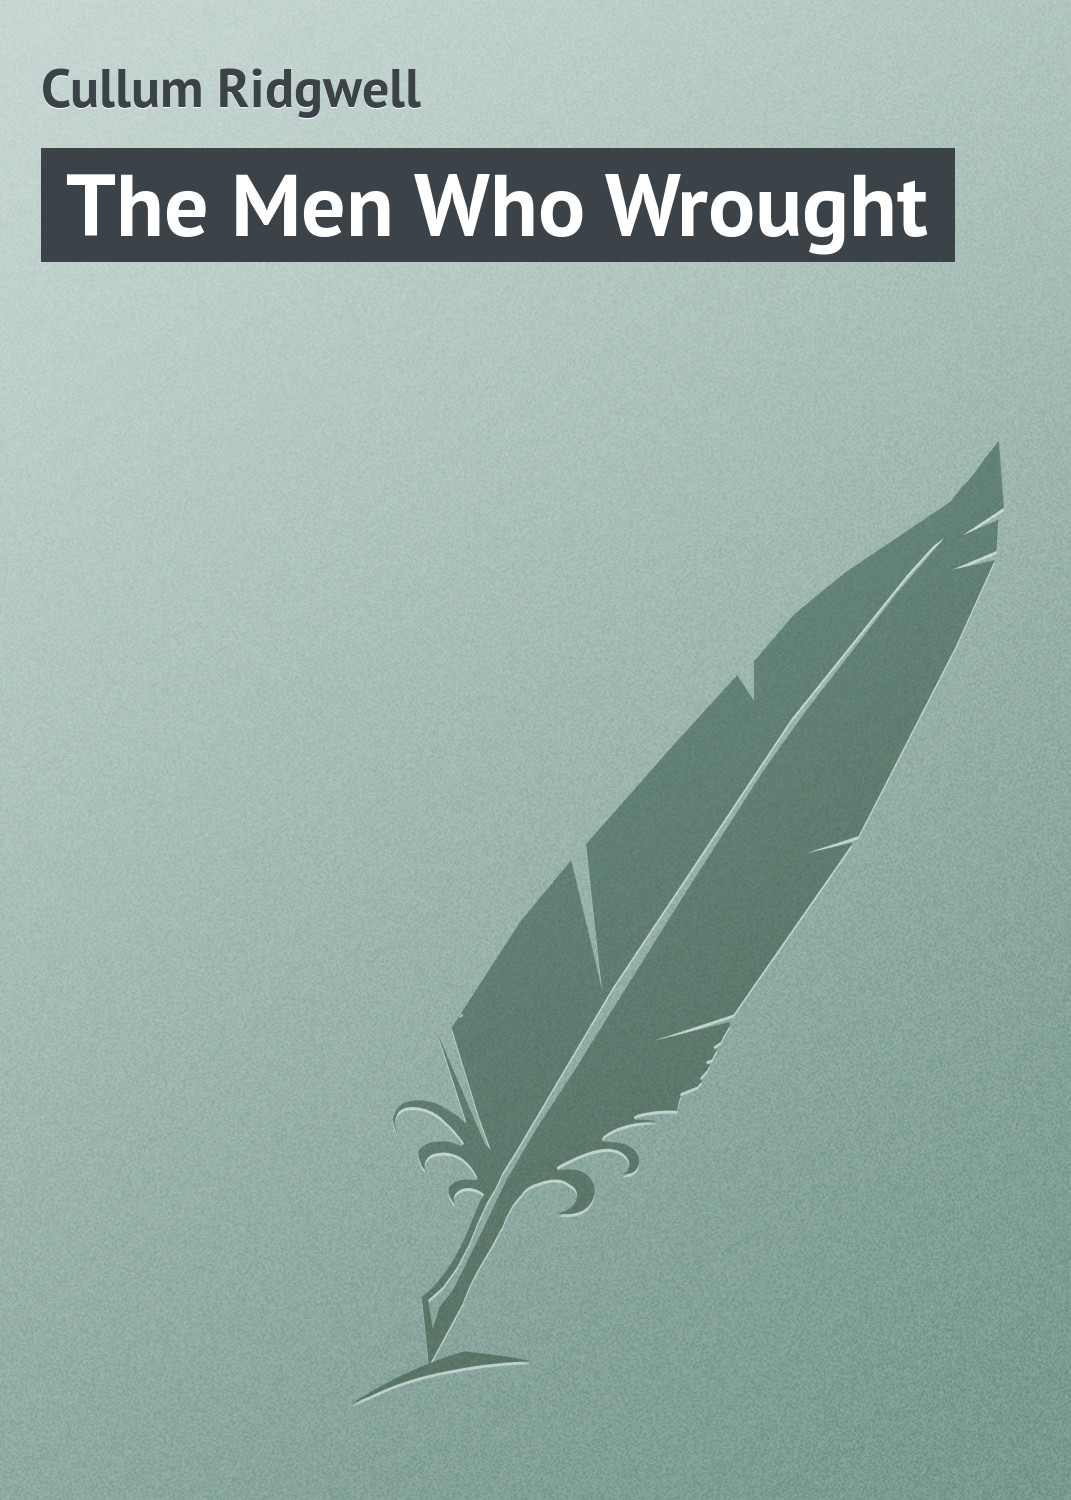 Cullum Ridgwell The Men Who Wrought